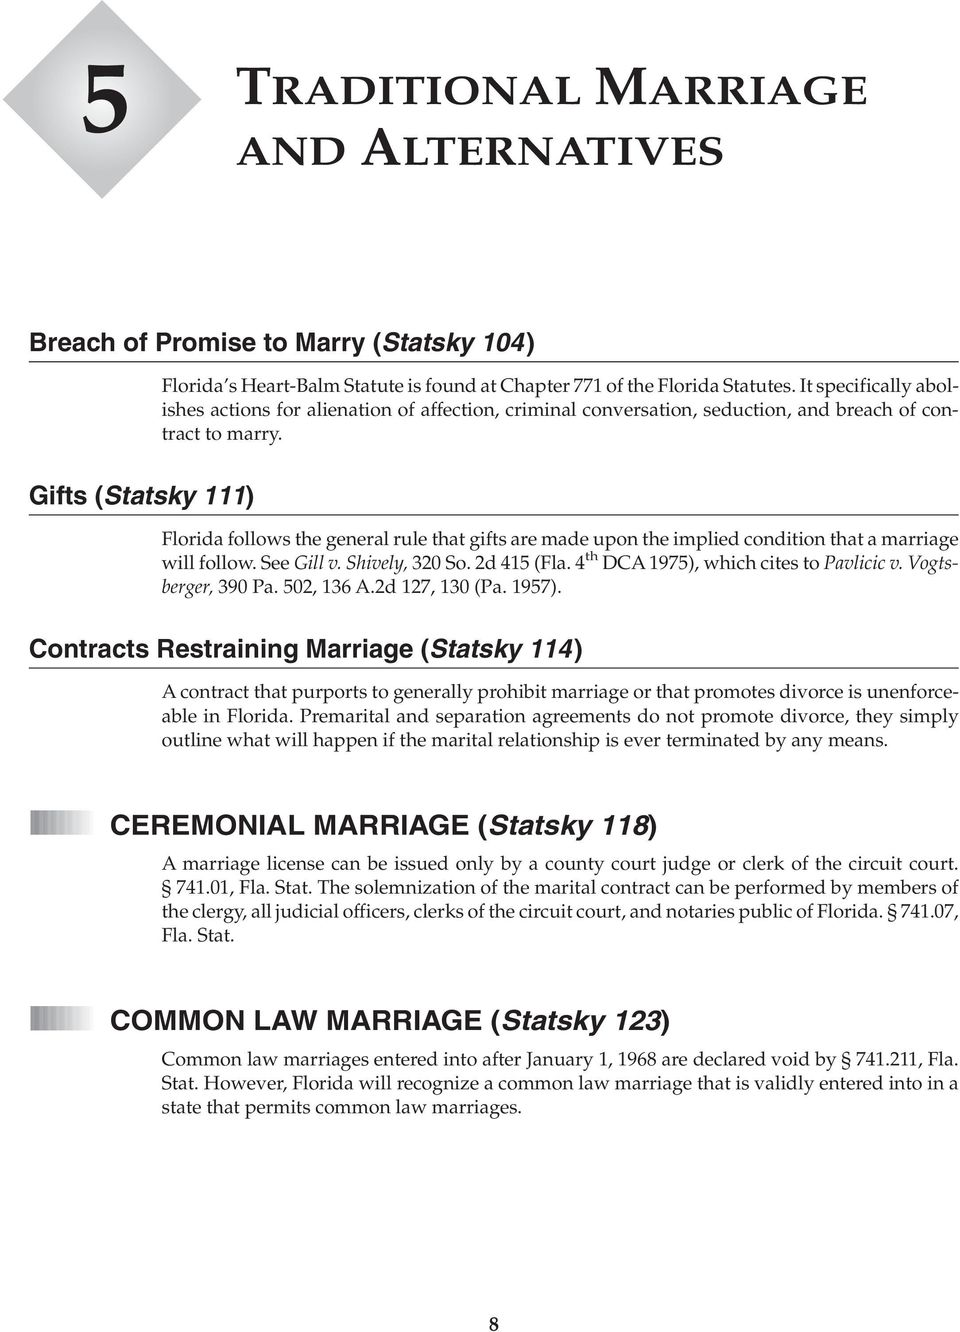 Gifts (Statsky 111) Florida follows the general rule that gifts are made upon the implied condition that a marriage will follow. See Gill v. Shively, 320 So. 2d 415 (Fla.